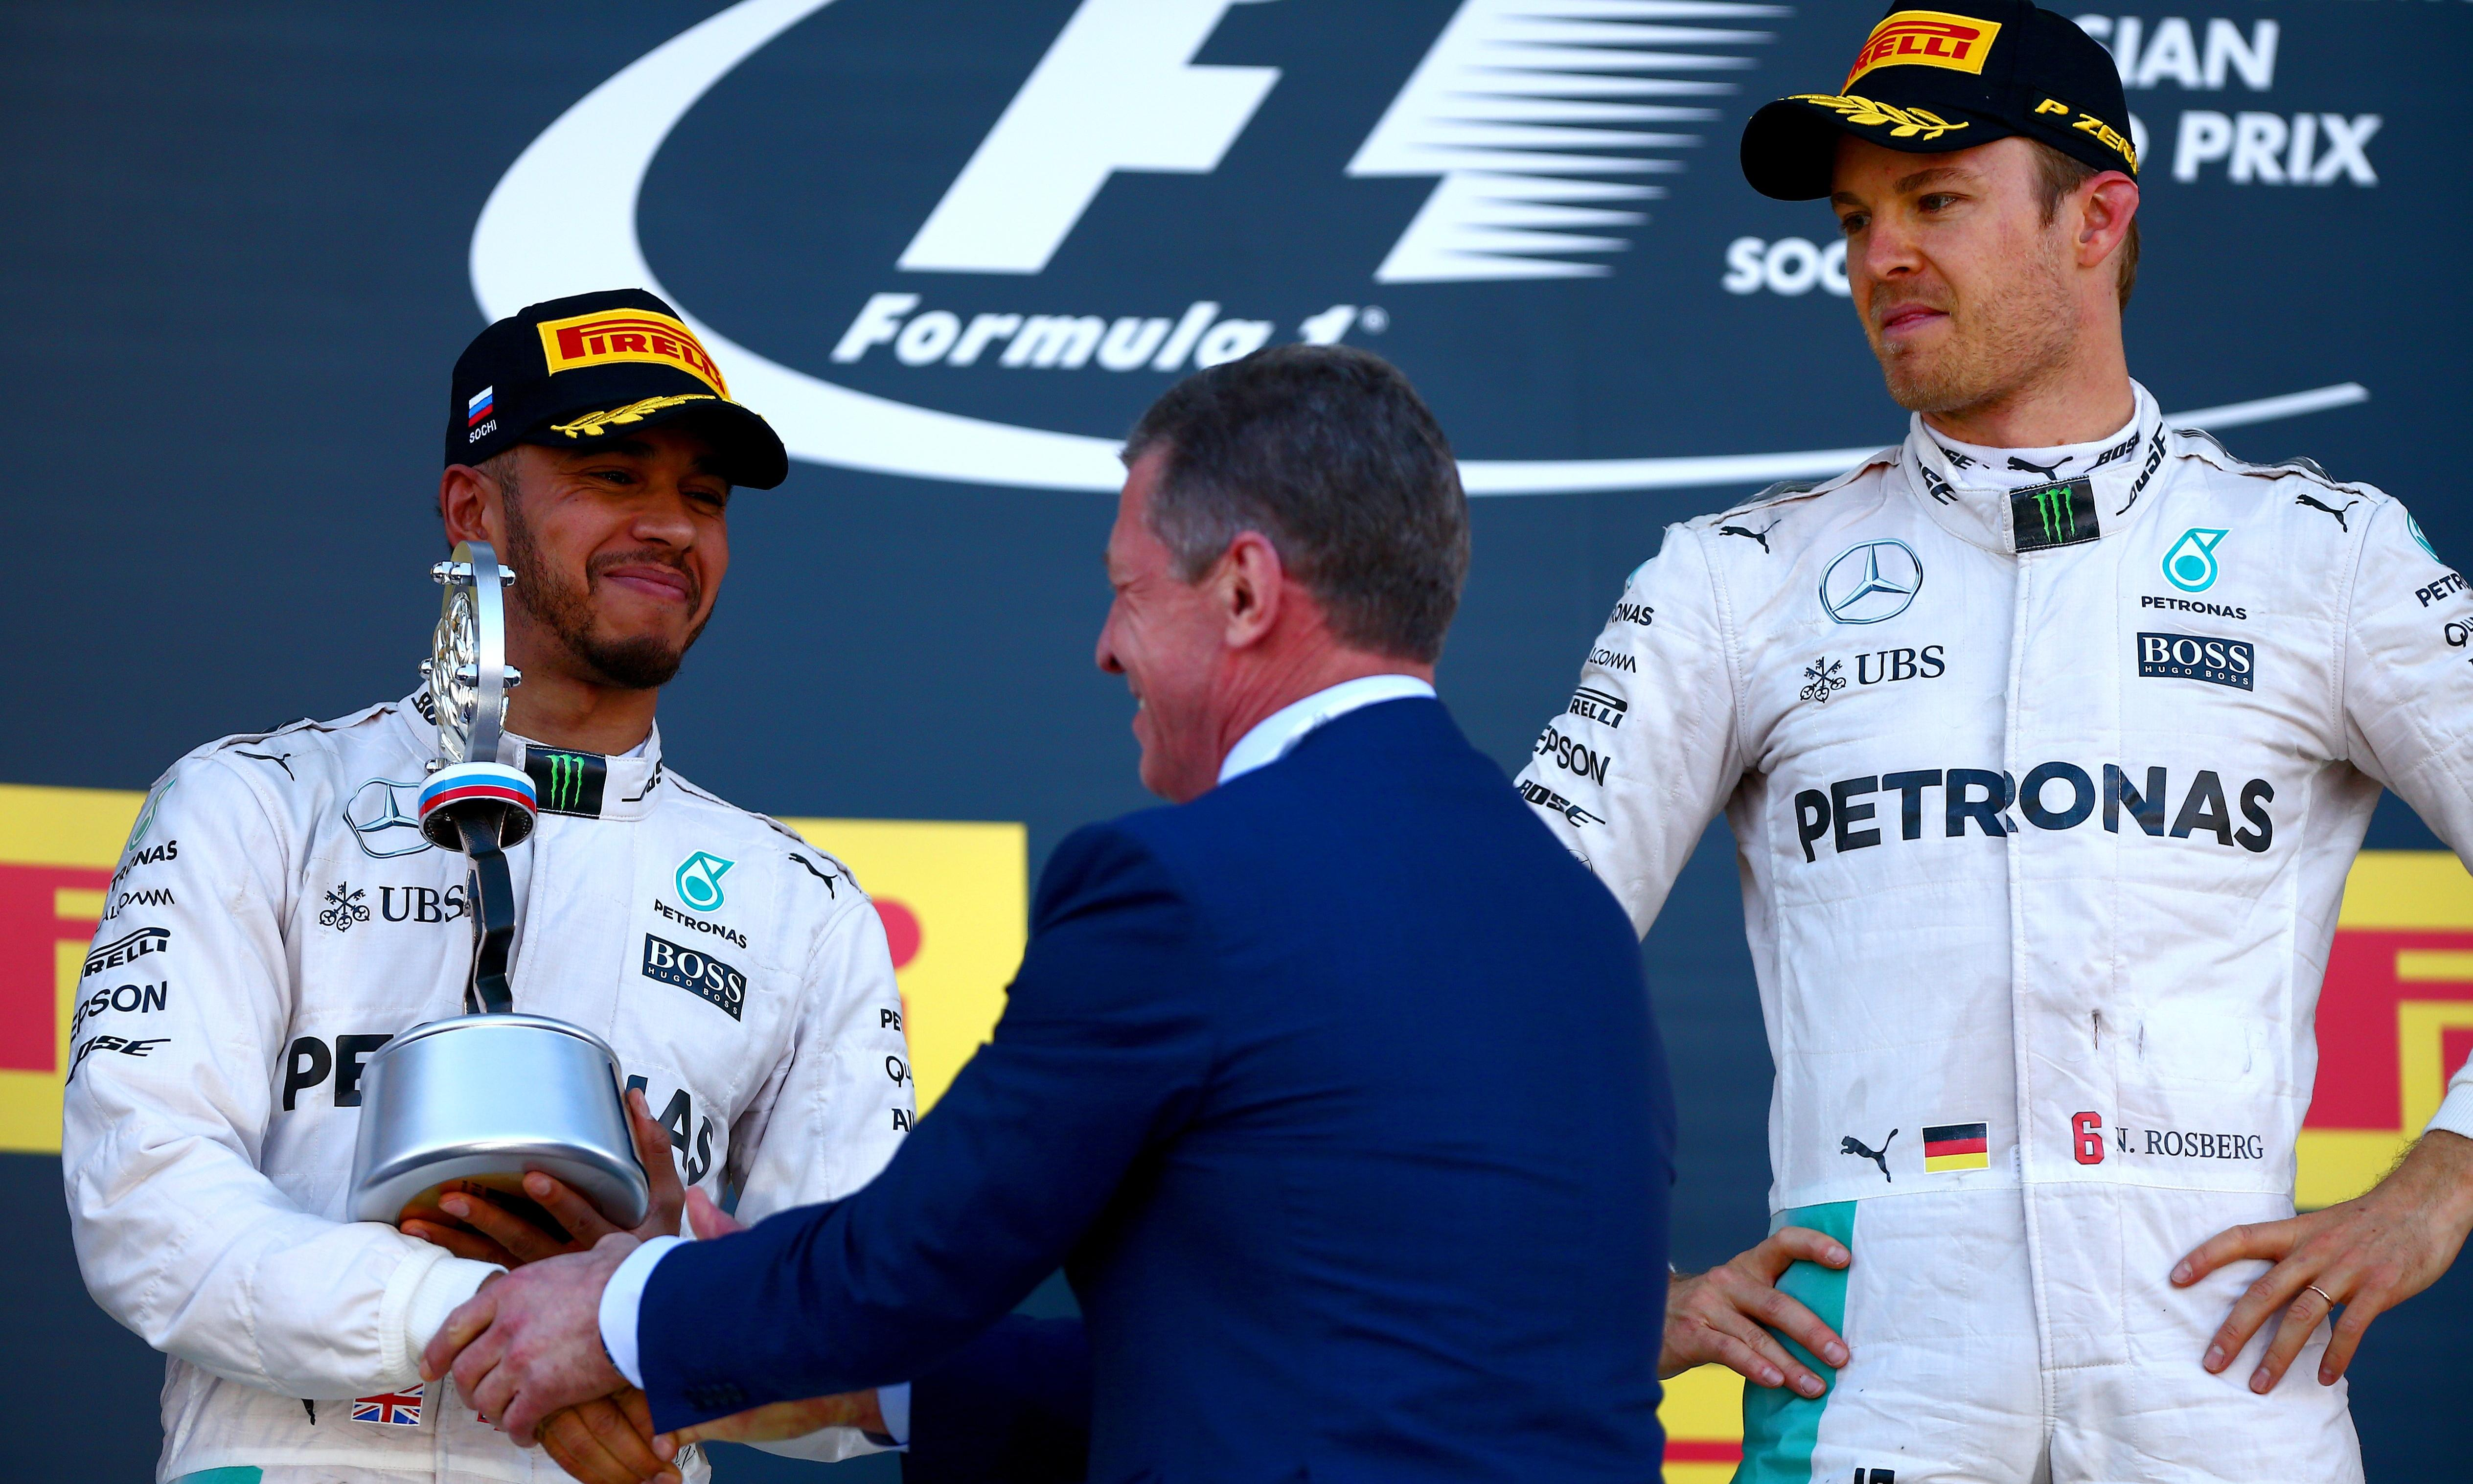 Lewis Hamilton tells F1 fans to forget about Mercedes conspiracy theories